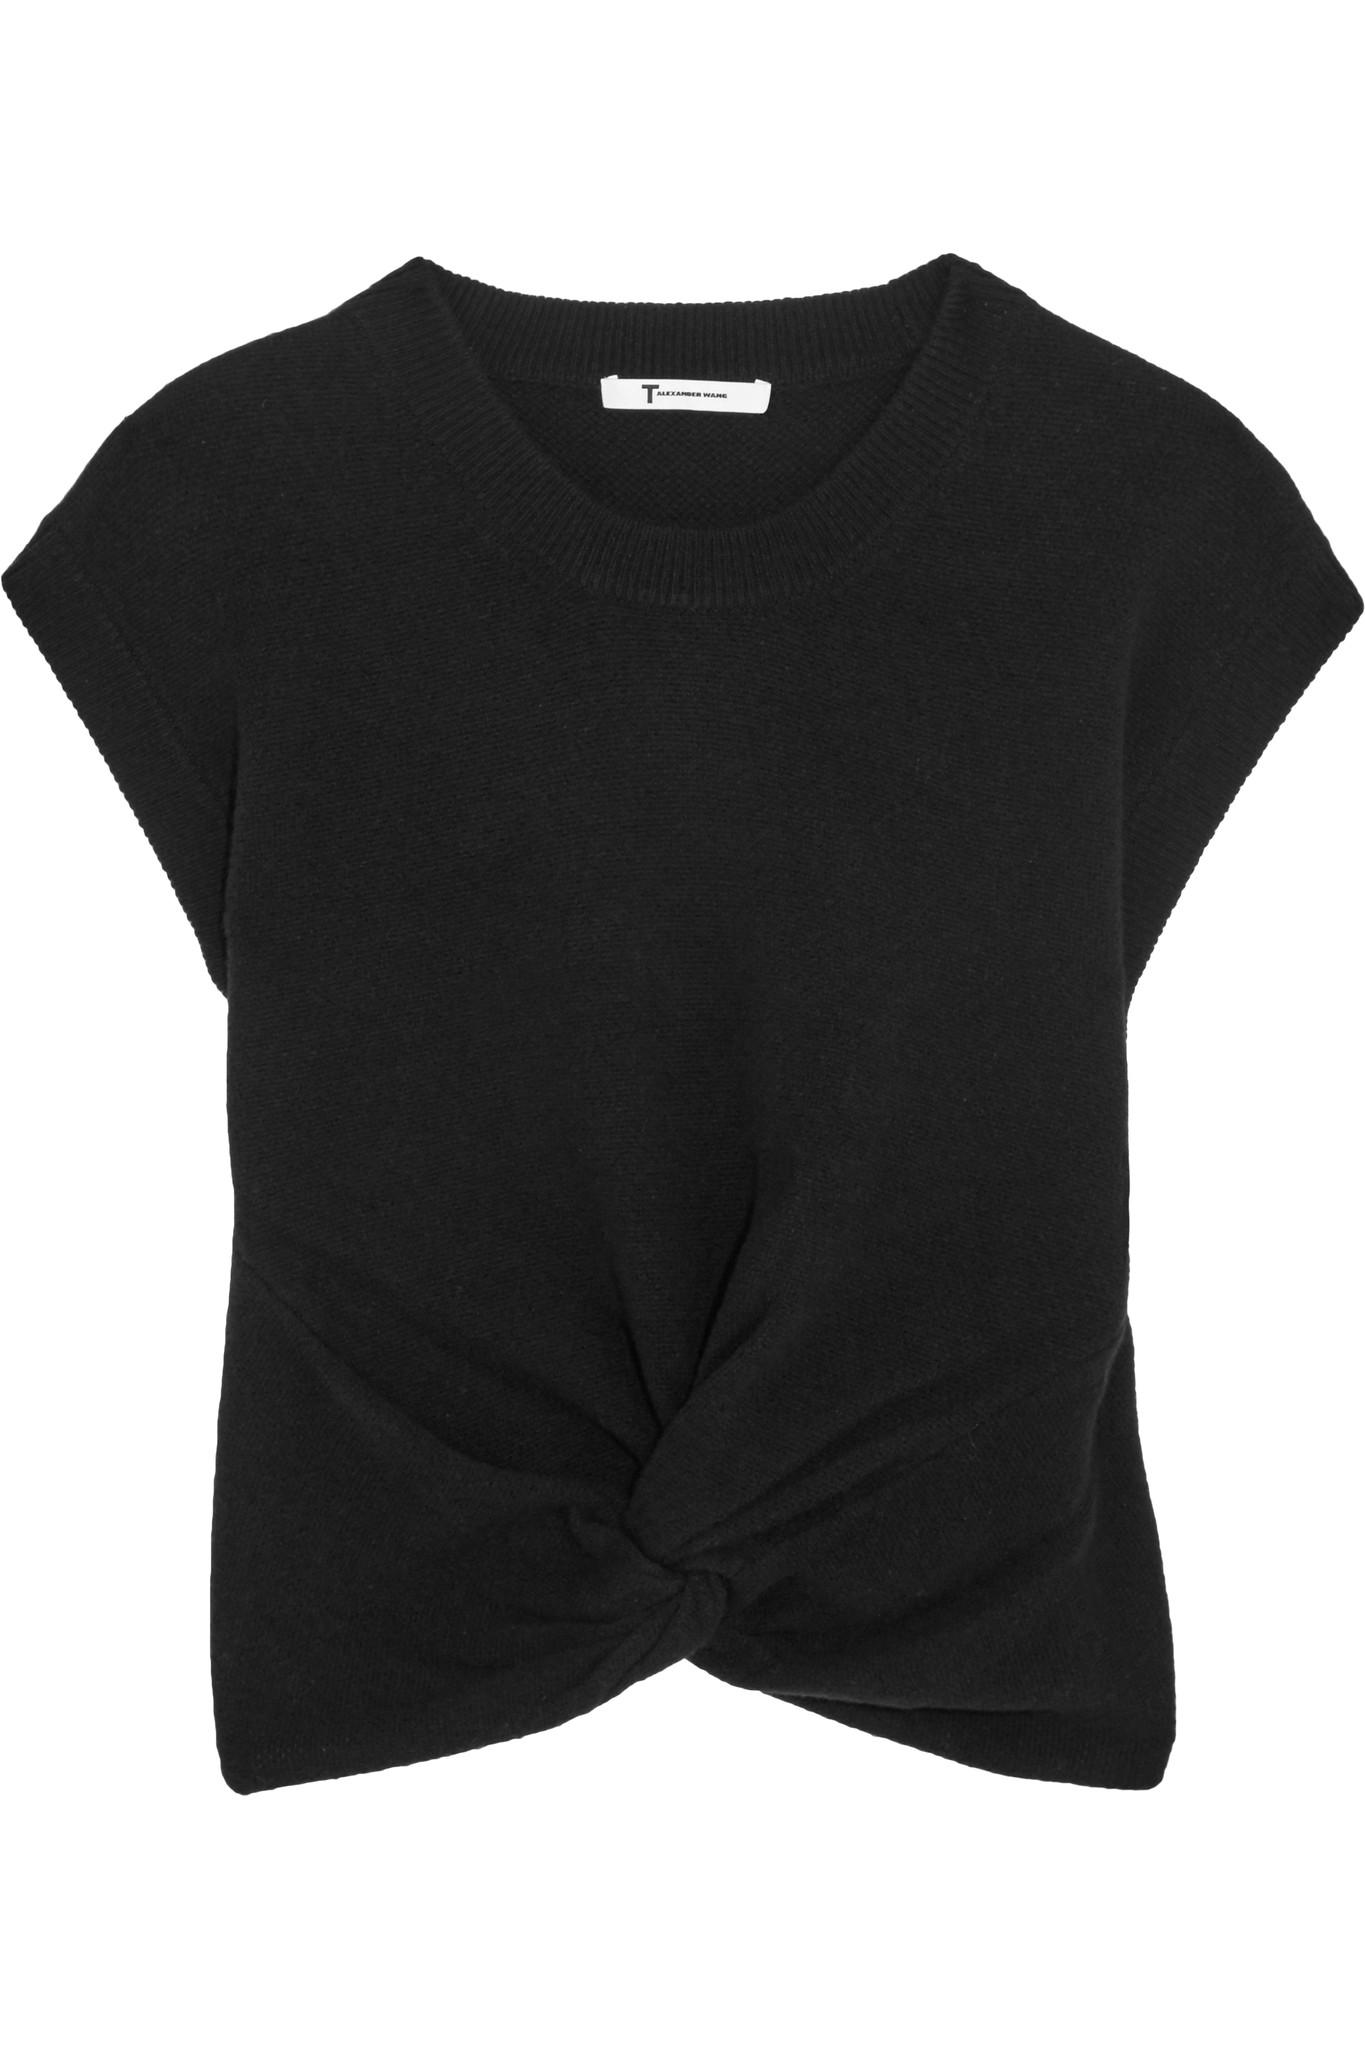 T By Alexander Wang Woman Mélange Wool And Cashmere-blend Sweater Black Size L Alexander Wang 2018 For Sale jjOGmsZnf